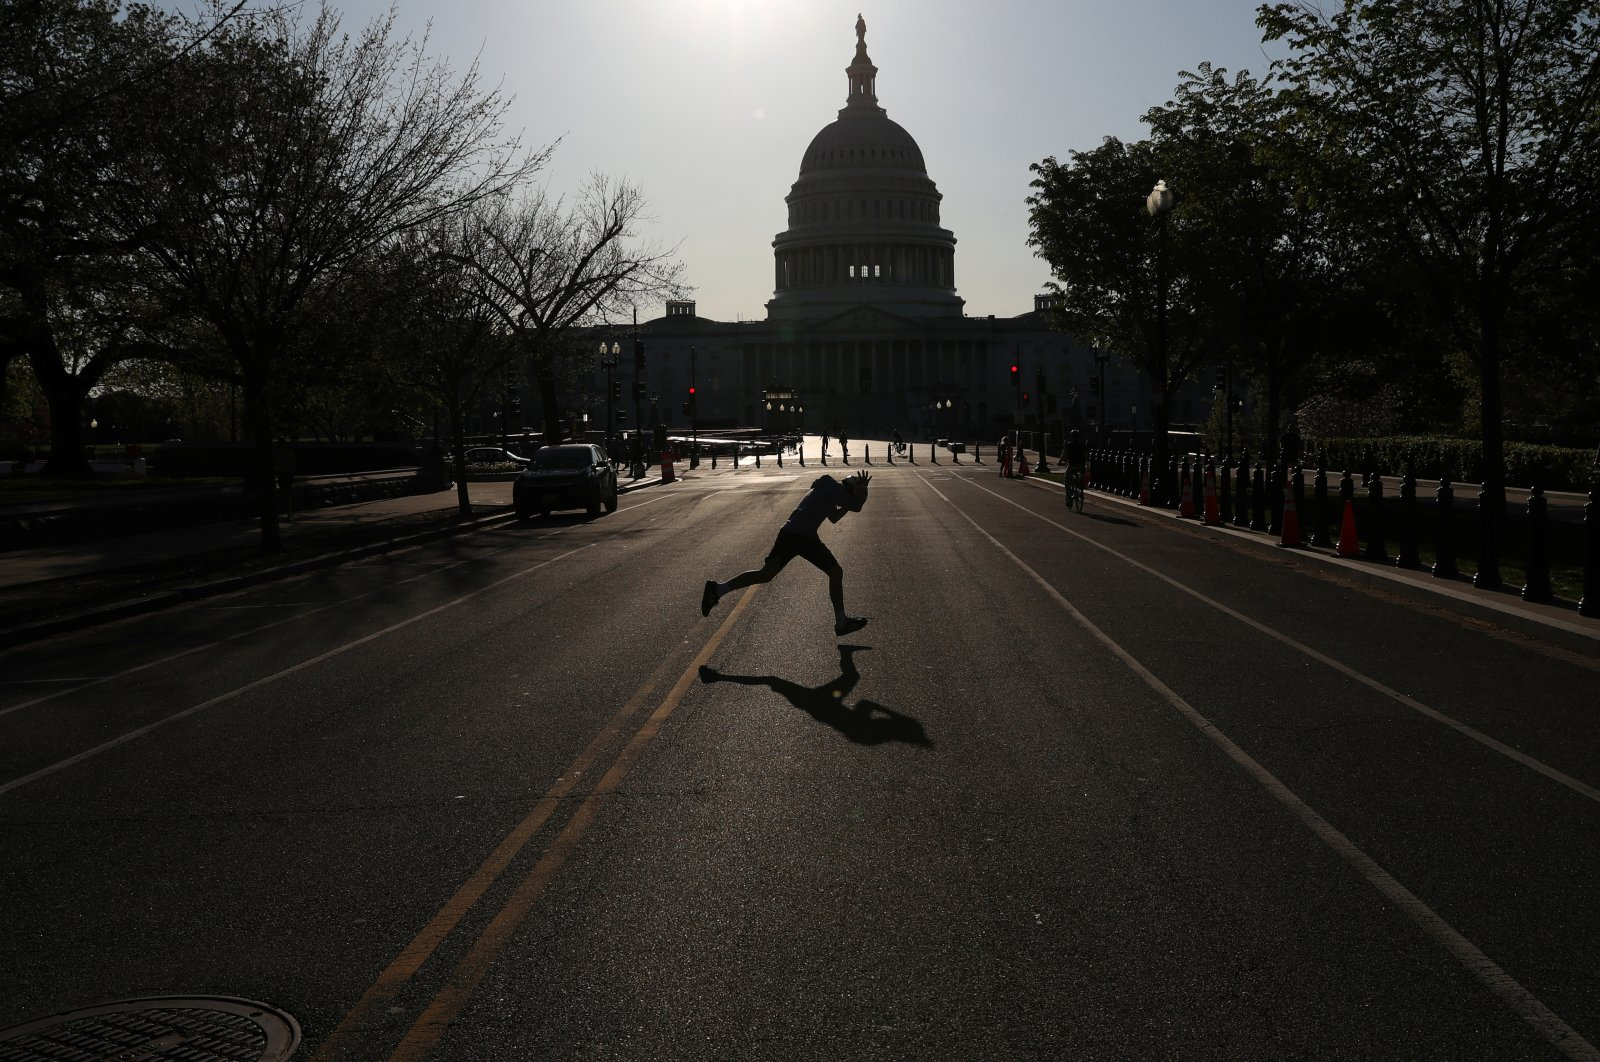 A child runs across East Capitol Street, a normally busy street outside of the U.S. Capitol building as the spread of the coronavirus continues in Washington D.C., U.S., Monday, April 6, 2020. (Reuters Photo)